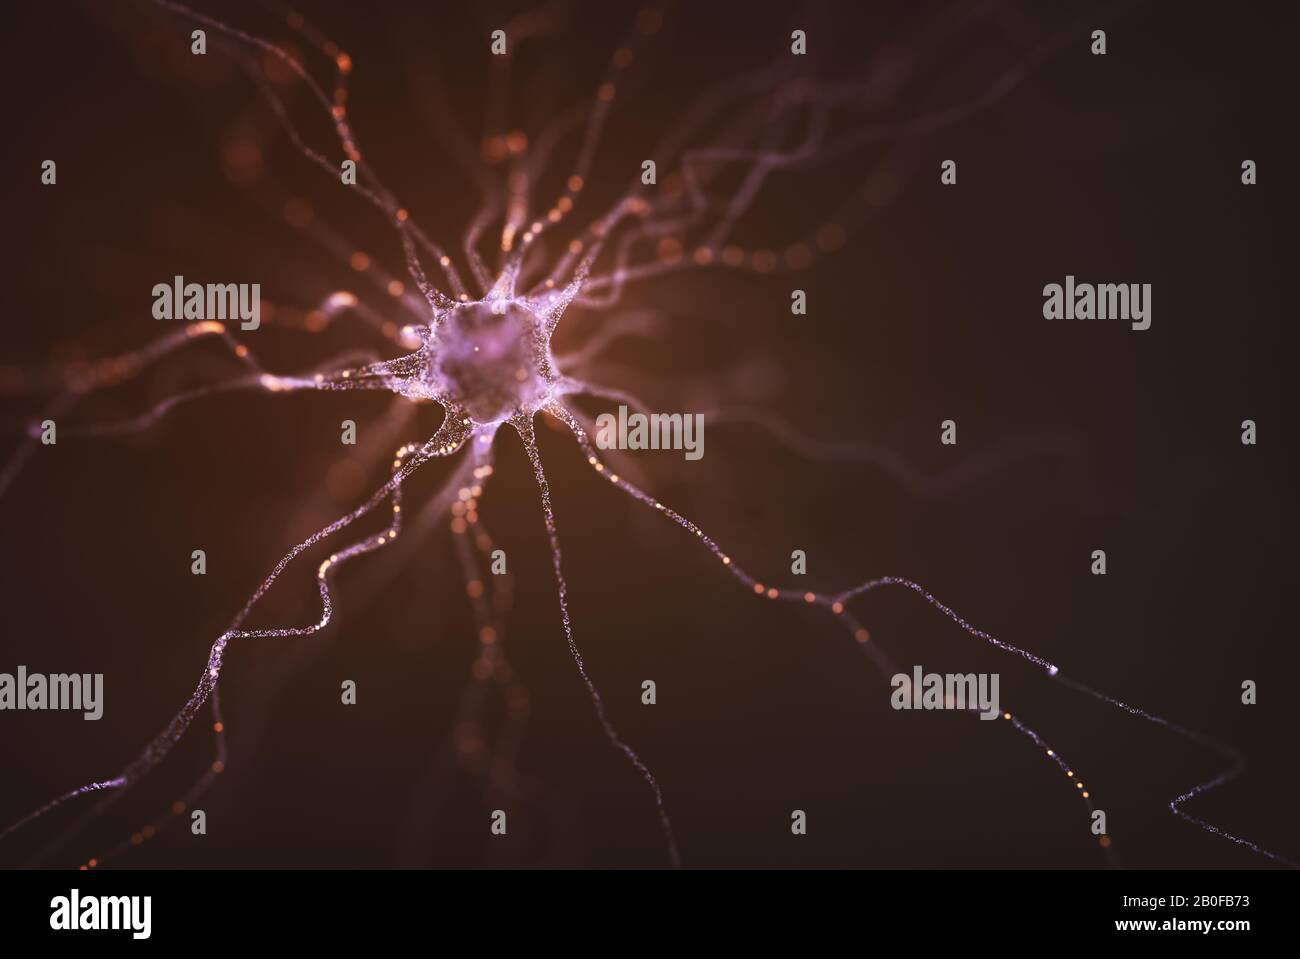 Conceptual image of a neuron energized with electric charge. Concept of science and research of the human brain, 3D illustration. Stock Photo